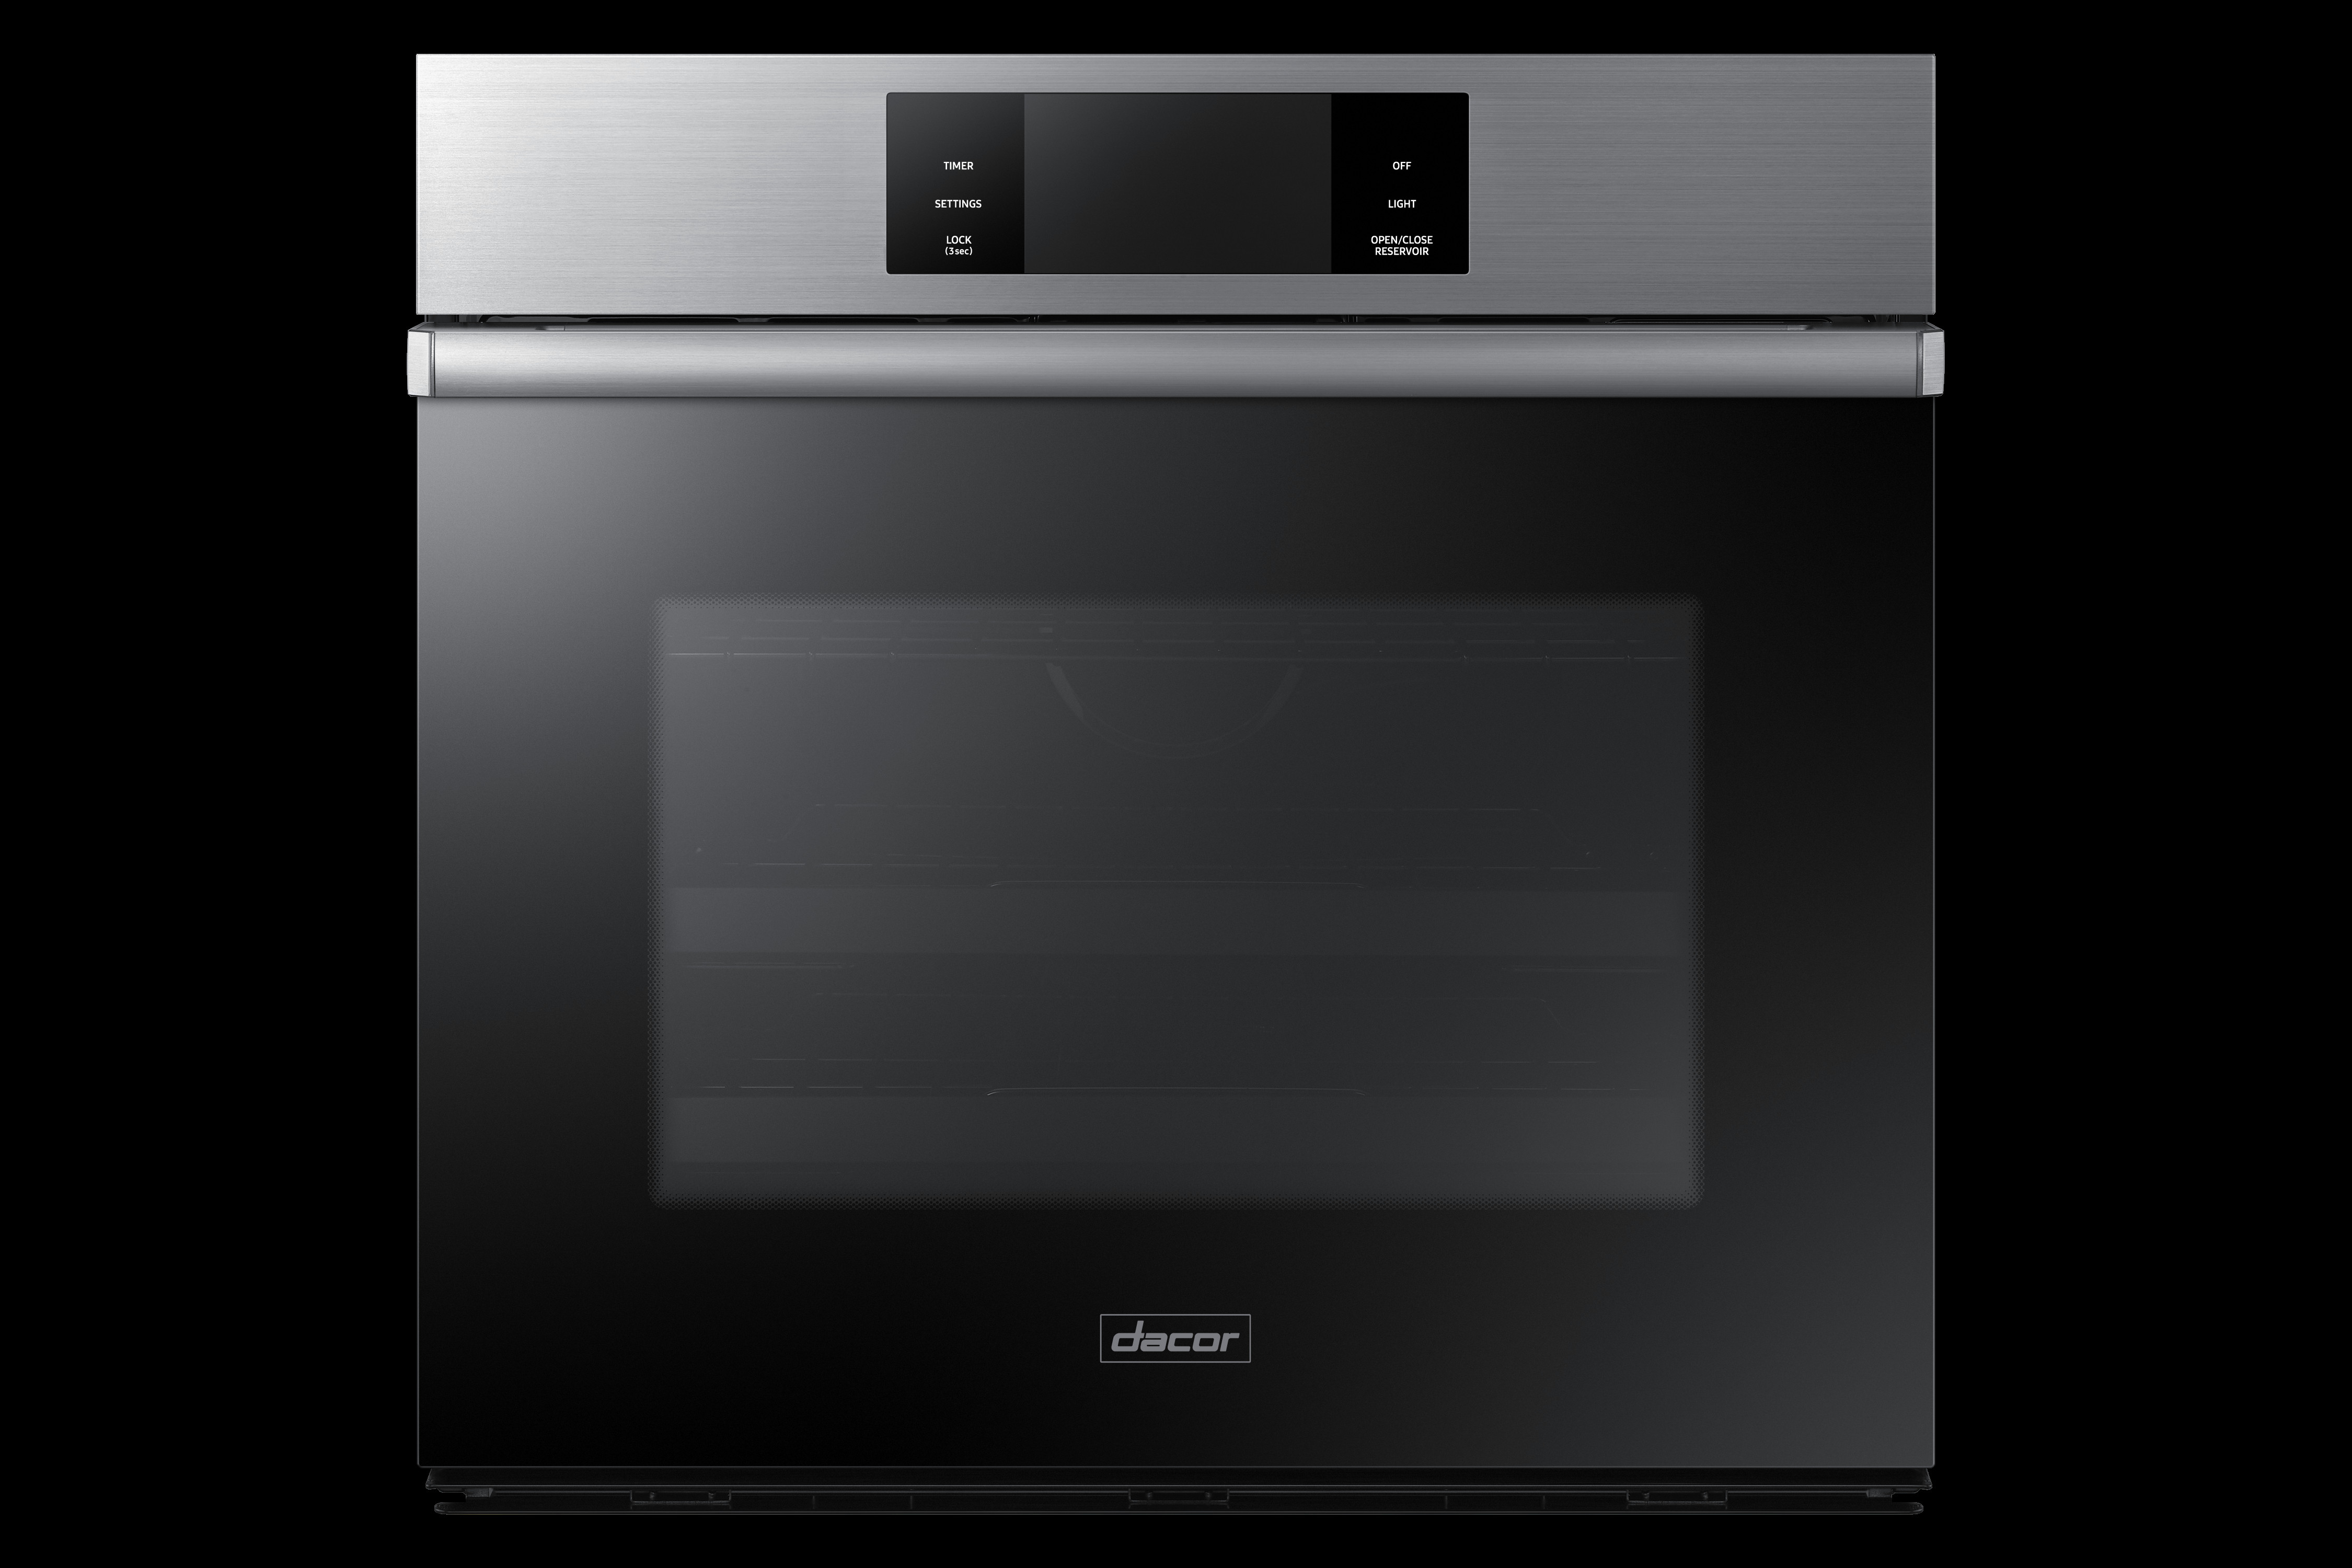 Dacor Dob30m977ss 30 Inch Electric Single Wall Oven With Four Part Wiring Diagram Image Disclaimer